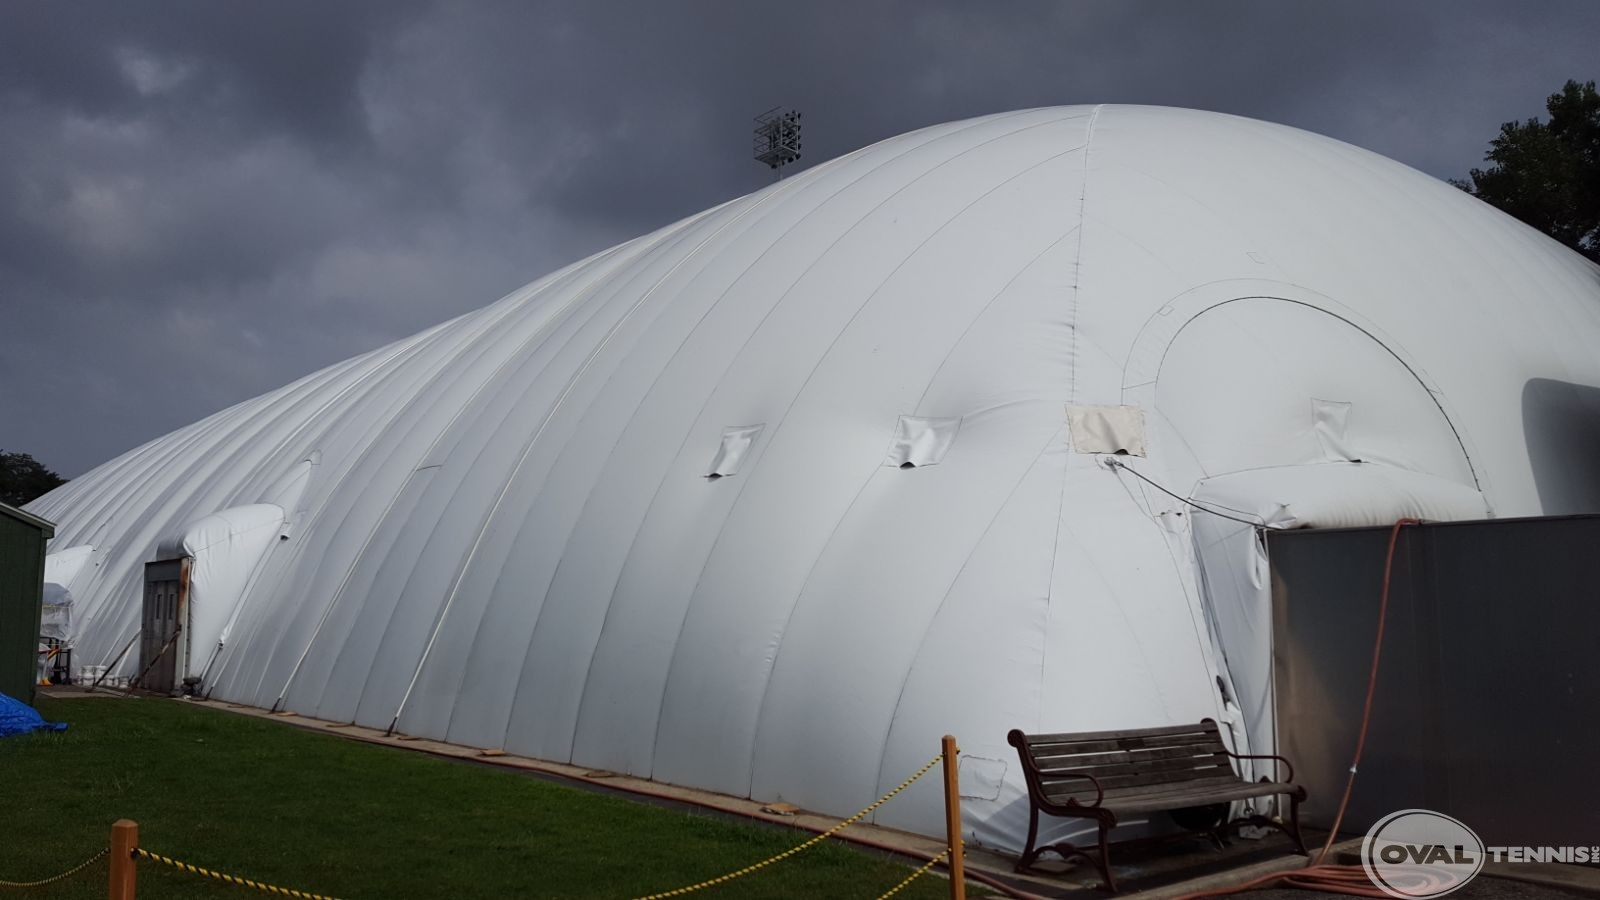 Tennis Court Air Structures And Domes Oval Tennis